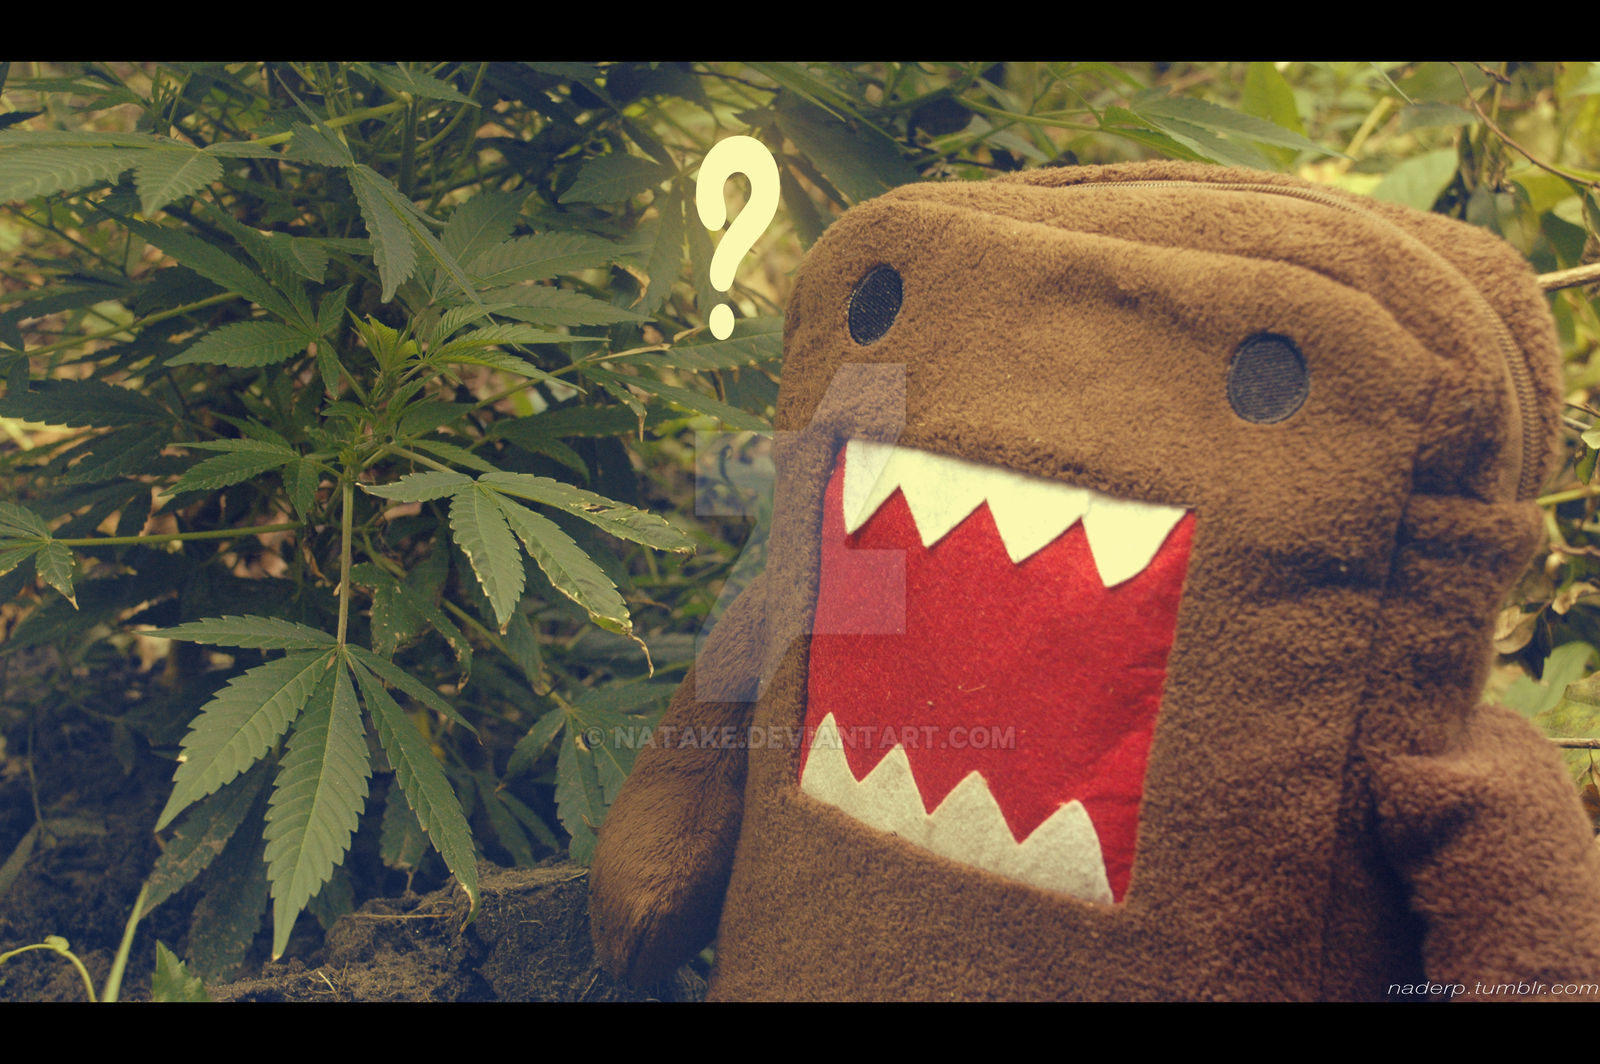 What you found there Domo-kun?